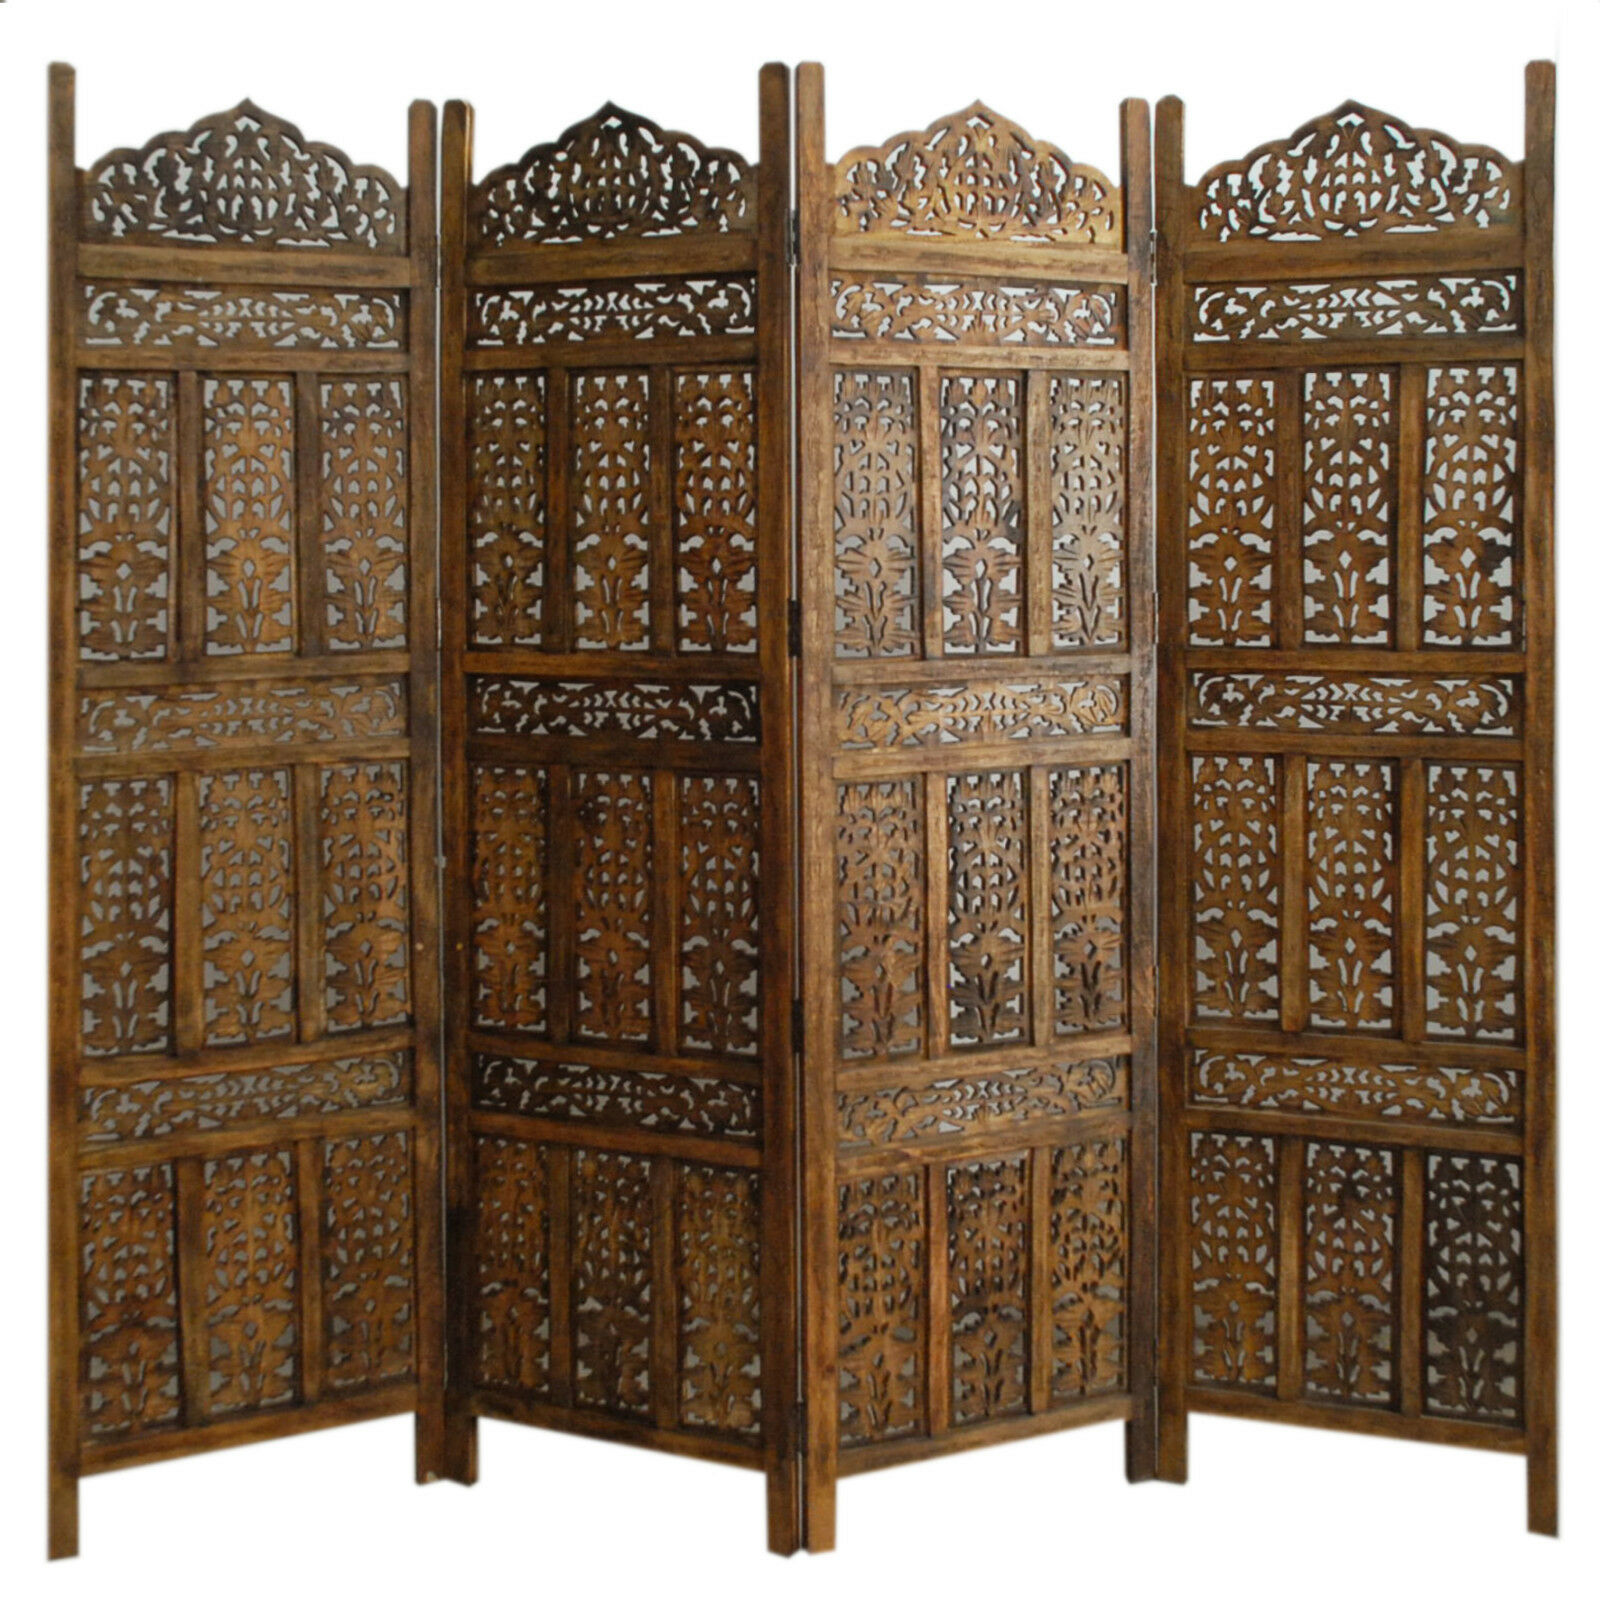 4 PANEL SCREEN ROOM DIVIDER PARAVENT INDIAN HAND CARVED WOODEN   K